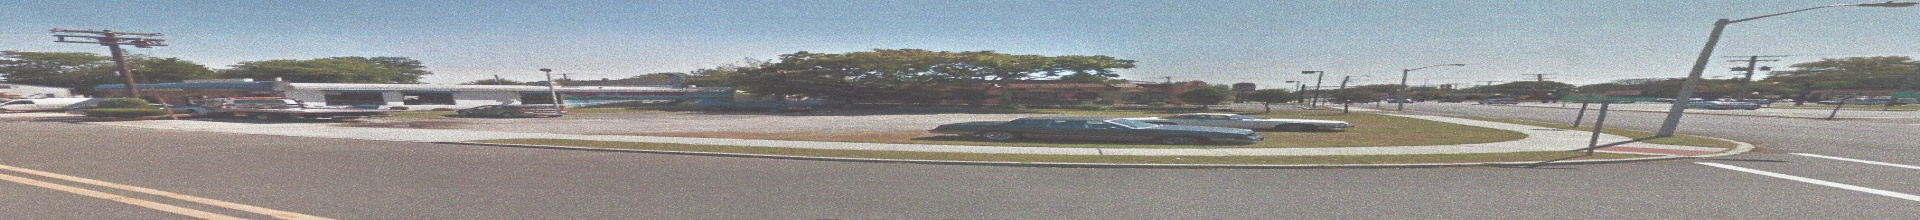 Land, For Sale, Land, Highway 35, Listing ID 215220001, Neptune, Monmouth County, New Jersey, United States, 07753,